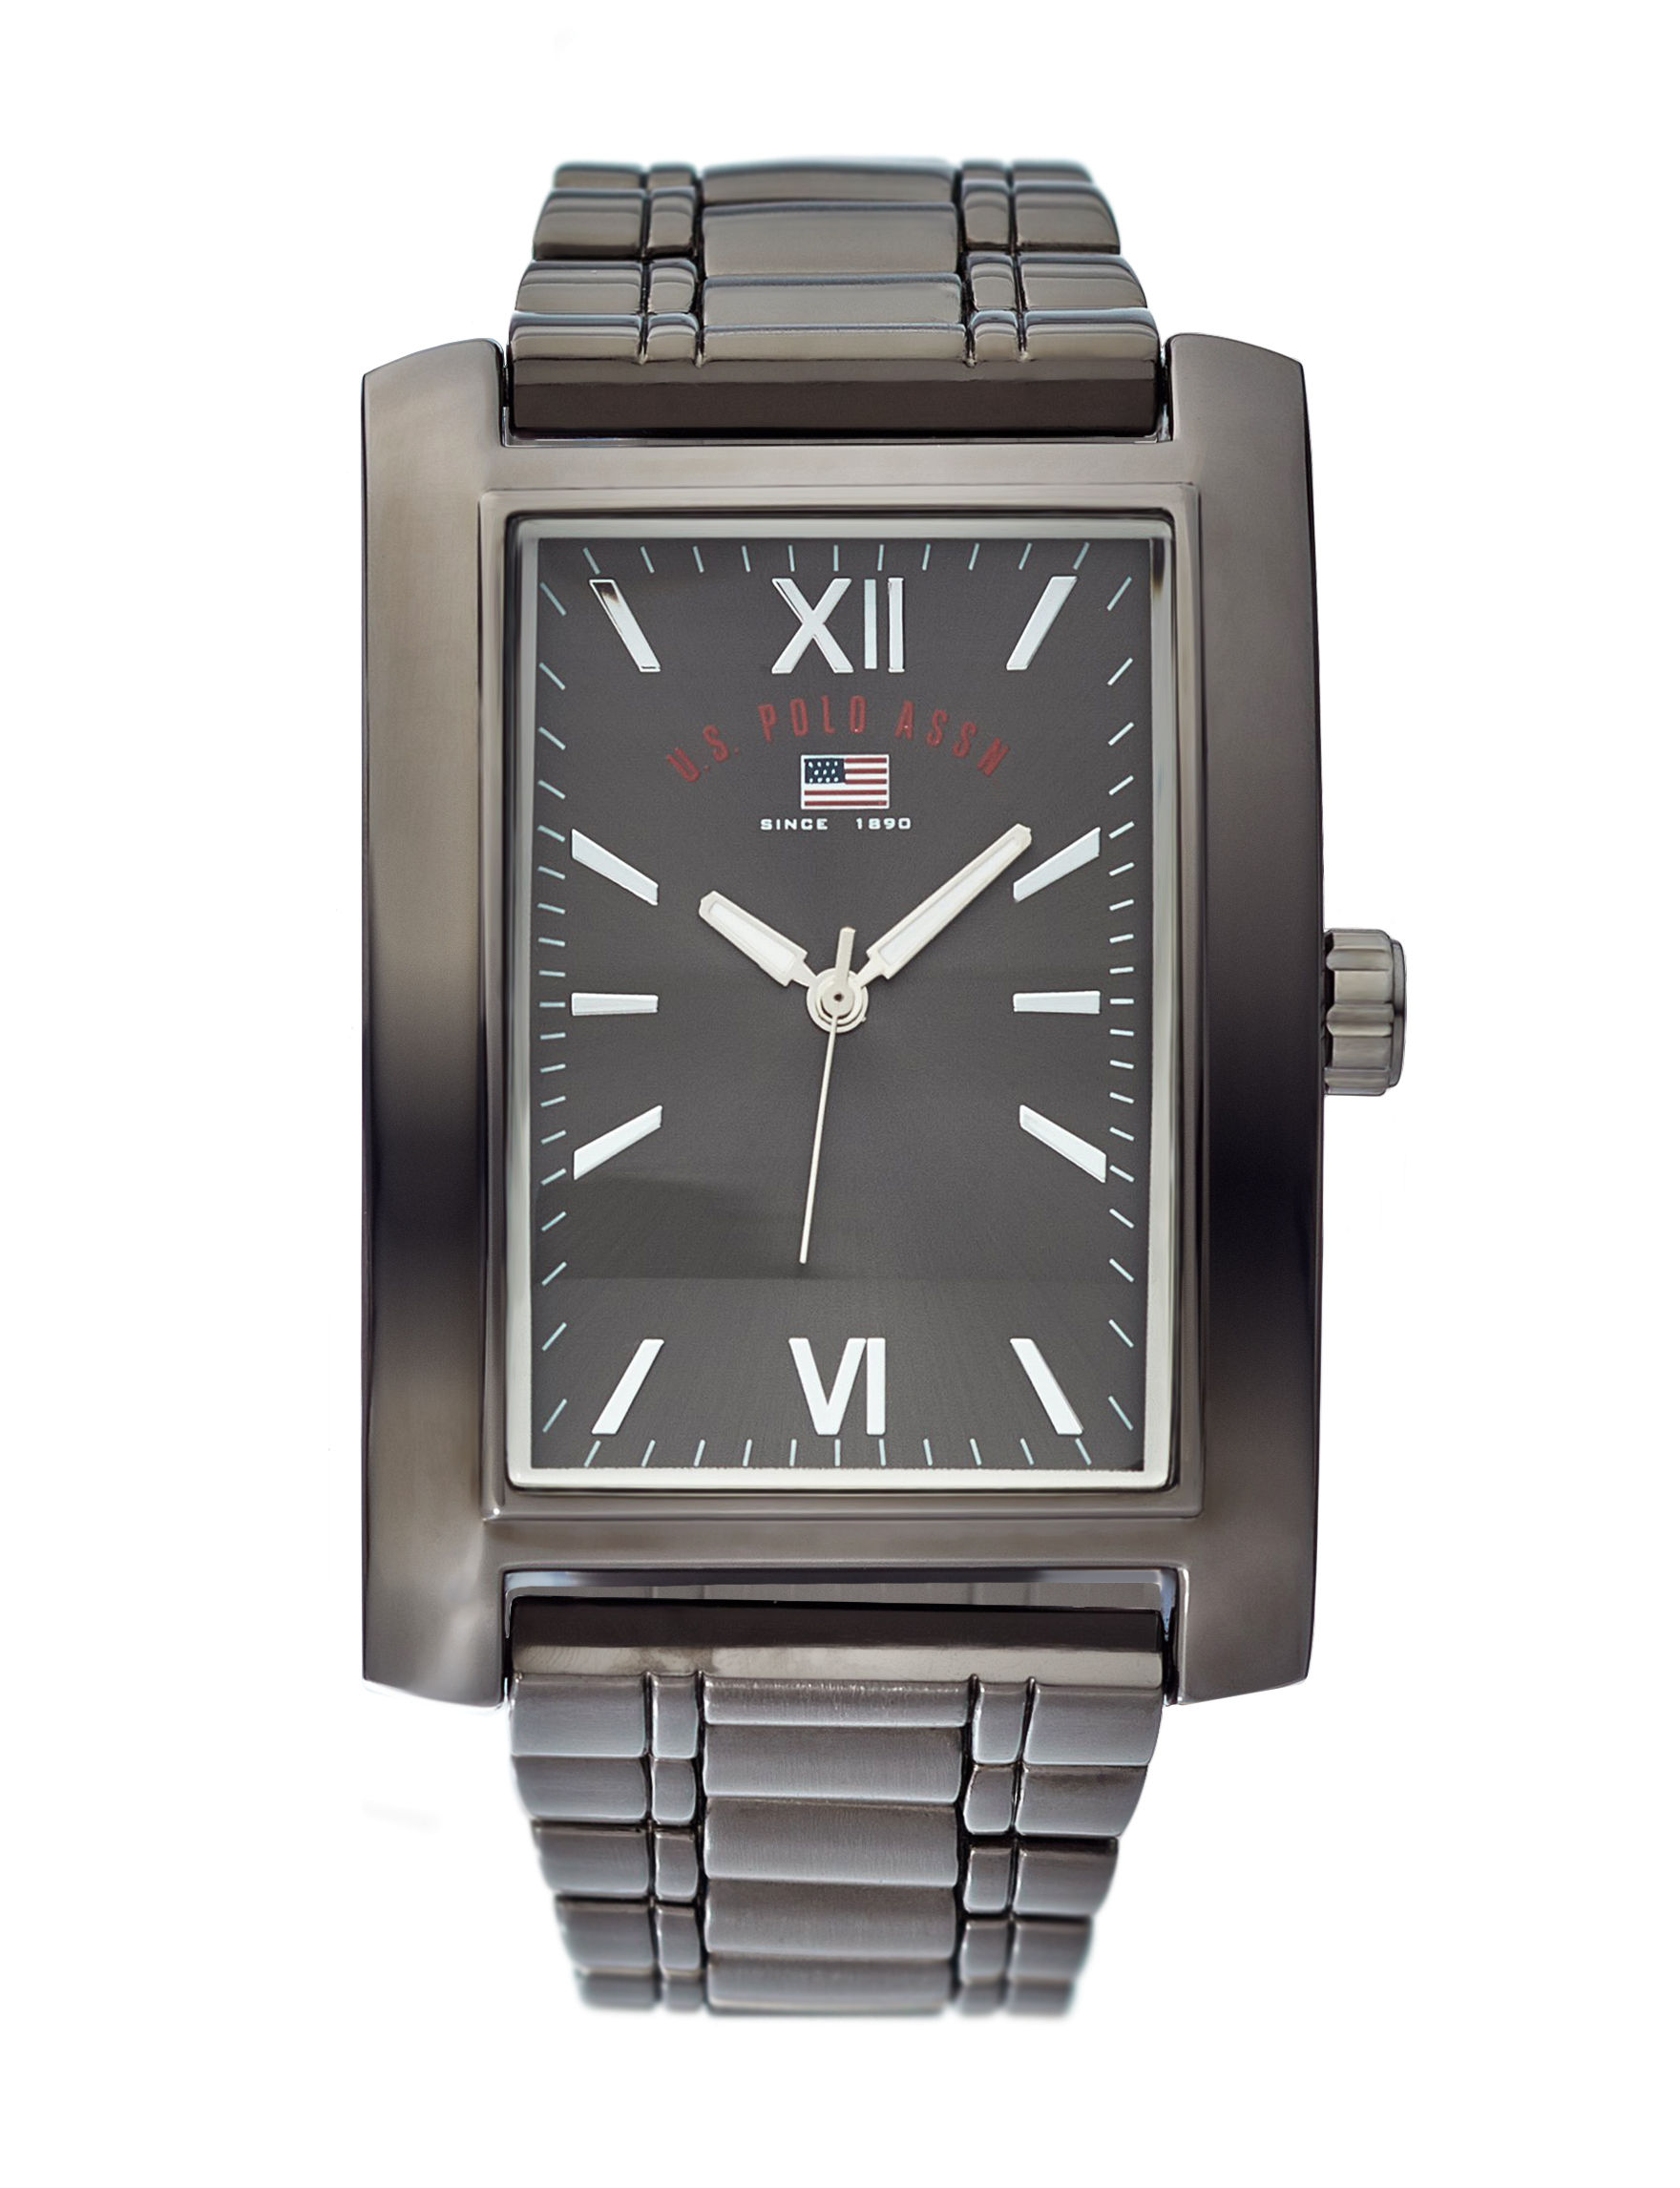 U.S. Polo Assn. Gunmetal Fashion Watches